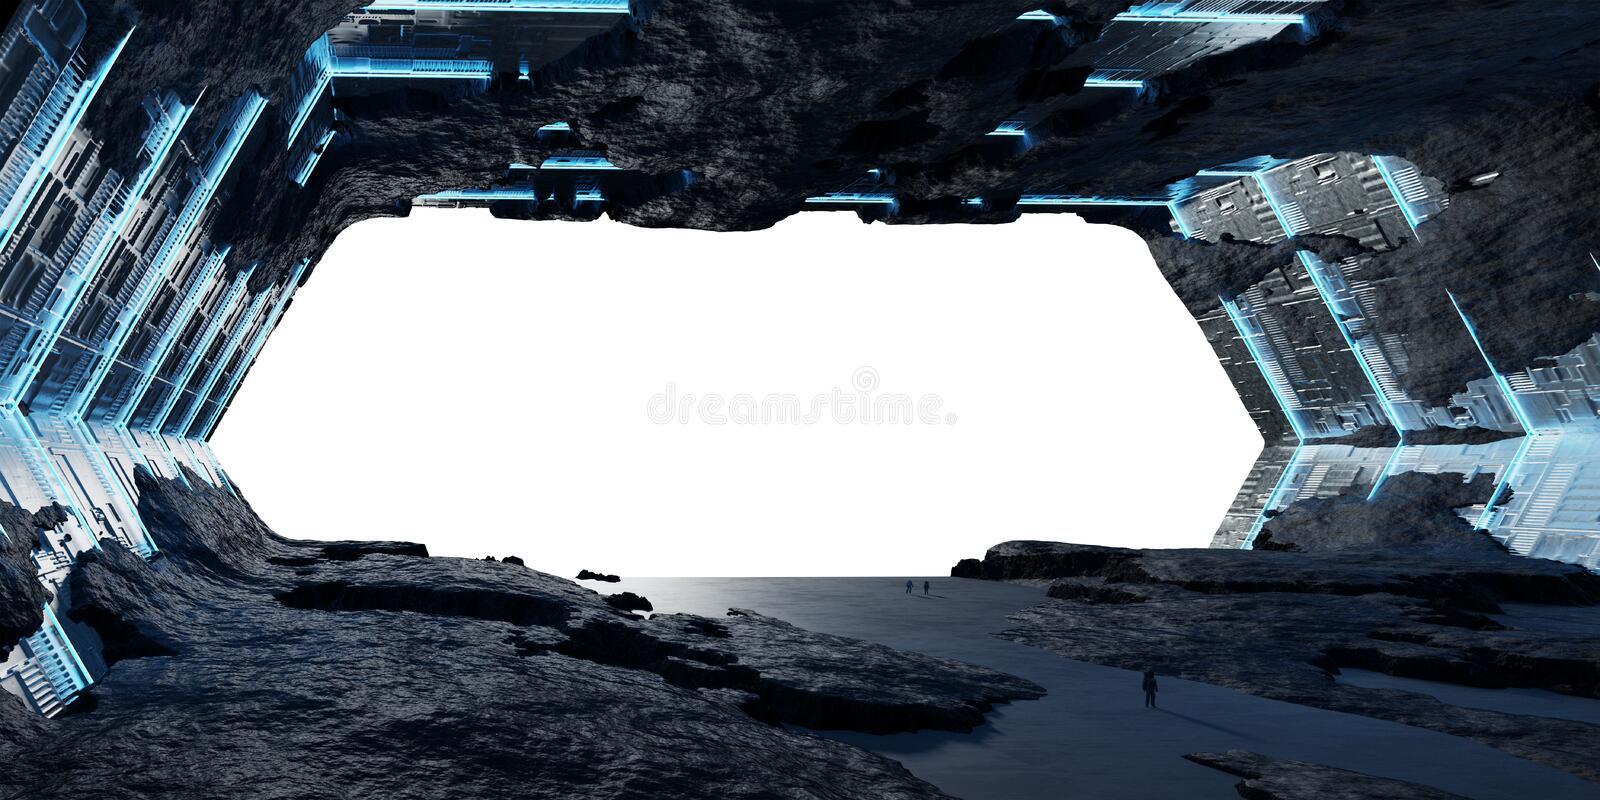 Huge asteroid spaceship interior 3D rendering elements of this i royalty free illustration